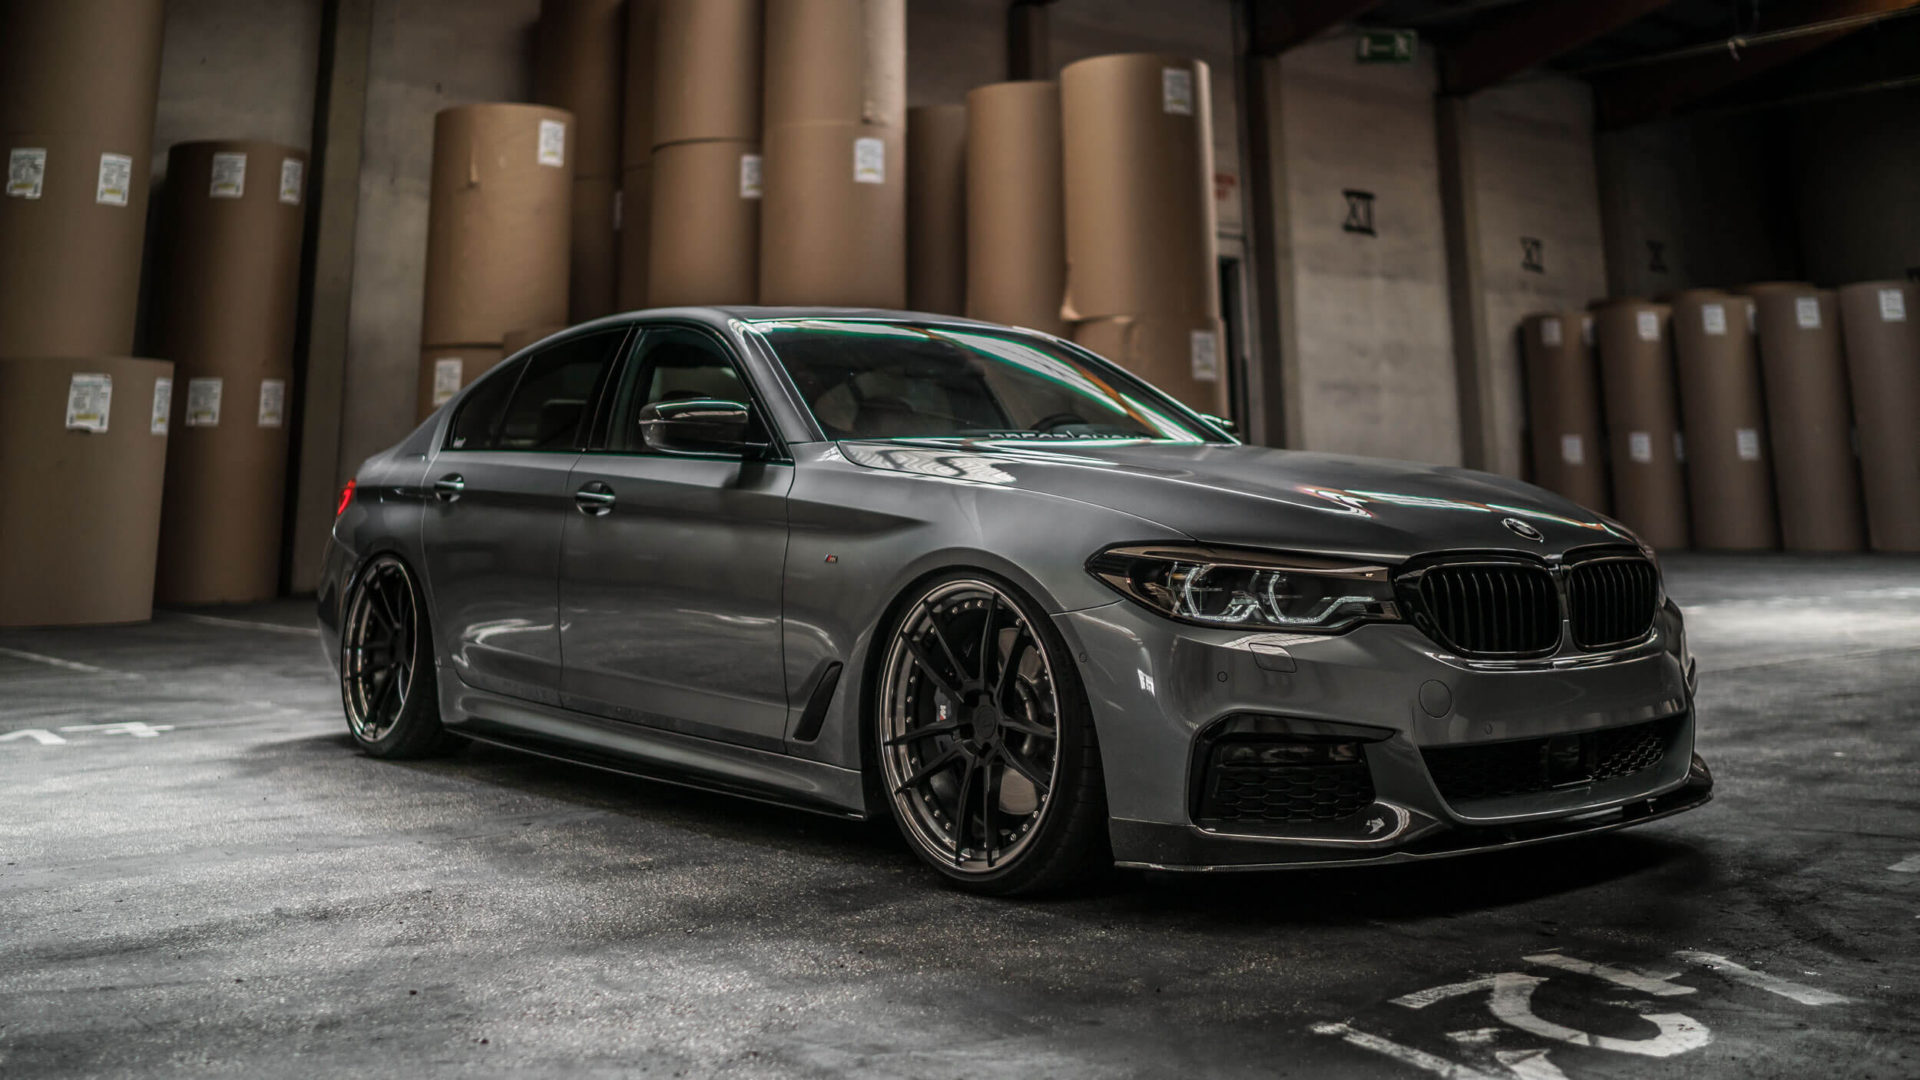 Bmw F90 M5 Competition Alloy Wheels Z Performance Wheels Zp Forged 2 Super Deep Concave In Matte Black Center Gunmetal Polished Lip M D Exclusive Cardesign